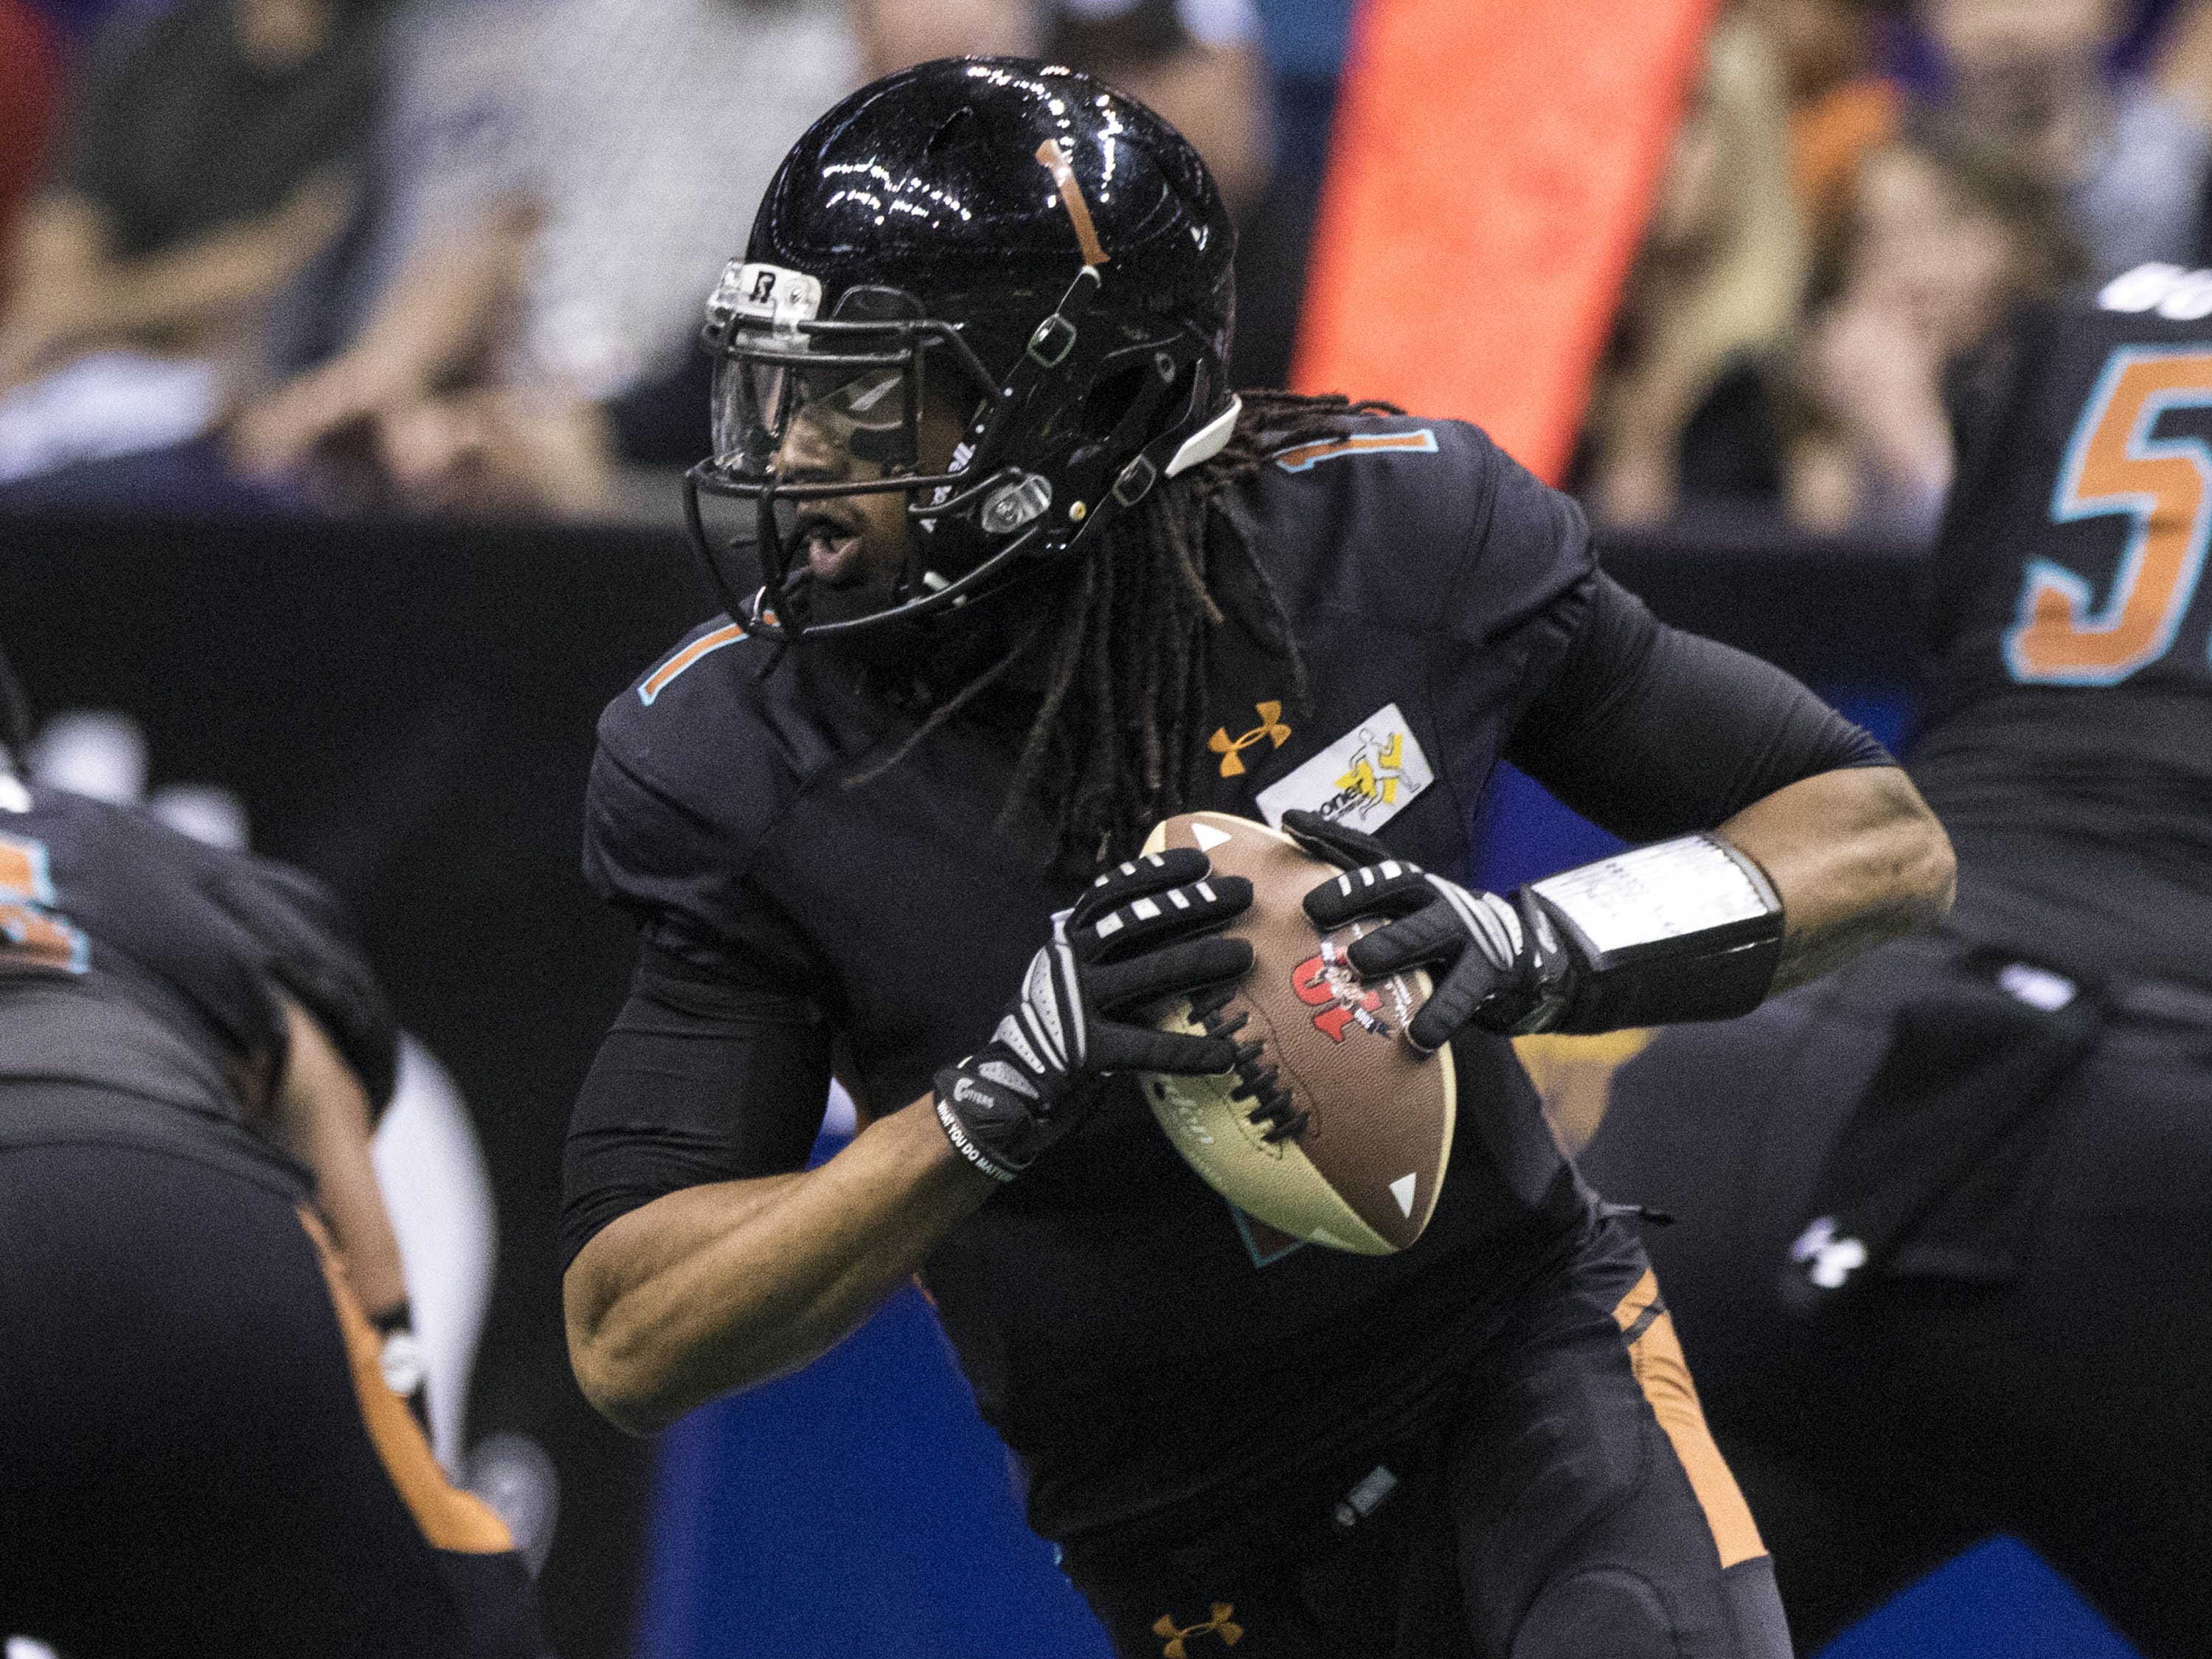 Arizona Rattlers Verlon Reed Jr.(1) looks for a receiver against Cedar Rapids River Kings during their game at Talking Stick Resort Arena in Phoenix, Sunday, March 3, 2019.